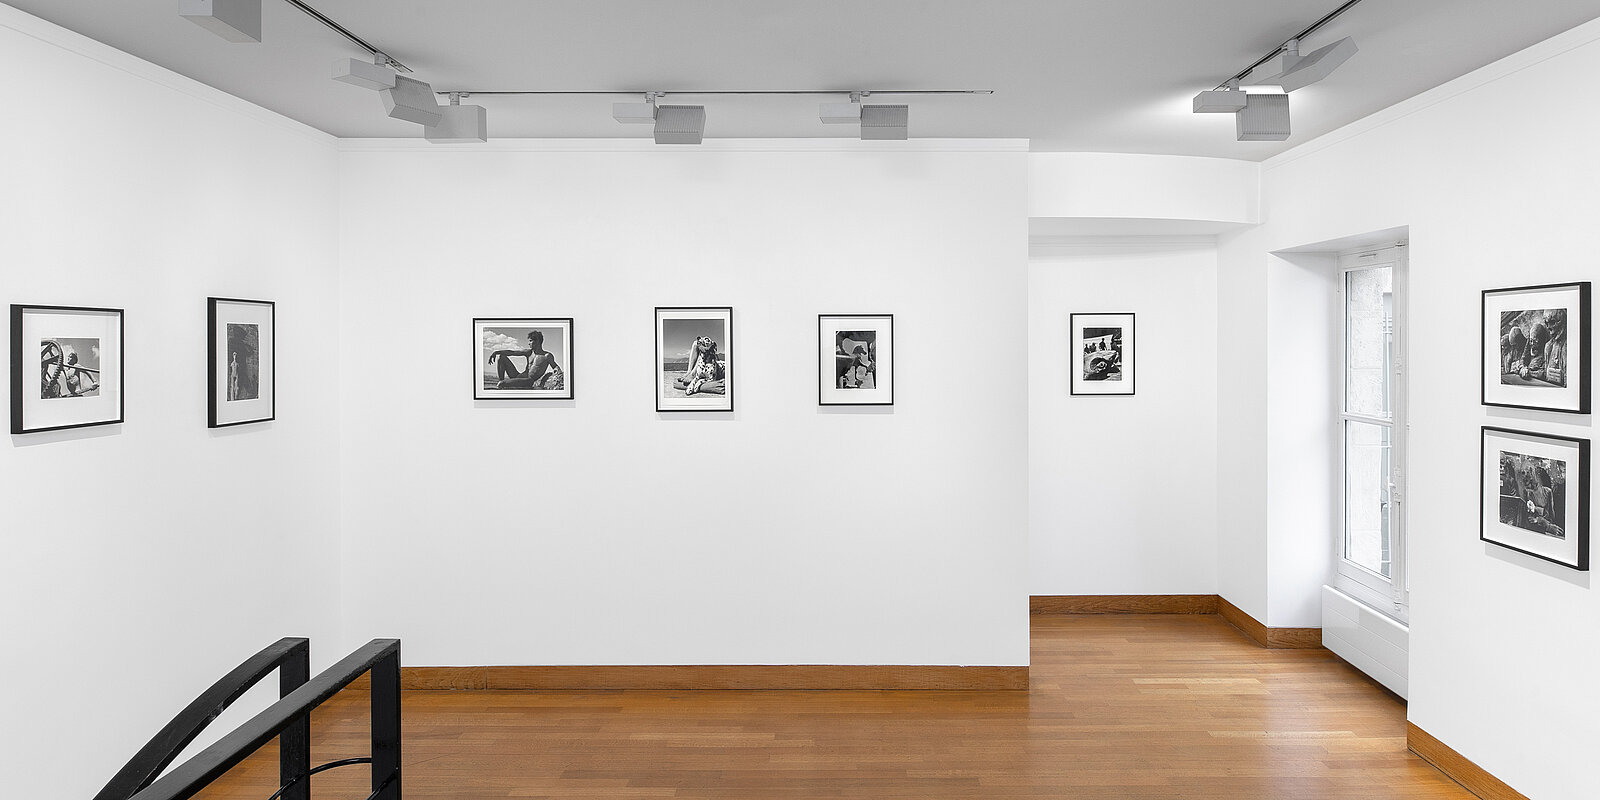 Installation view, Herbert List ITALIA, Galerie Karsten Greve Paris, 2020. Photo: Nicolas Brasseur